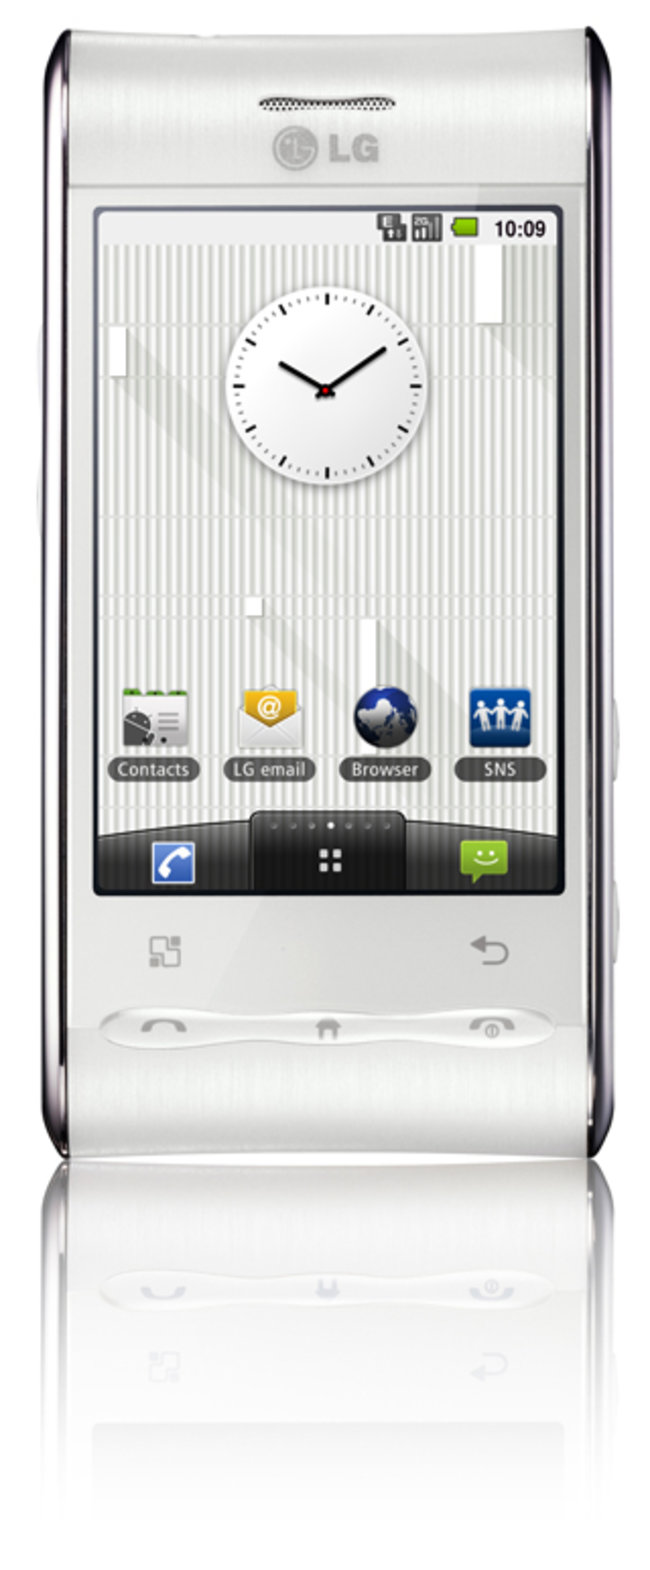 Android made easy with the LG Optimus - photo 8